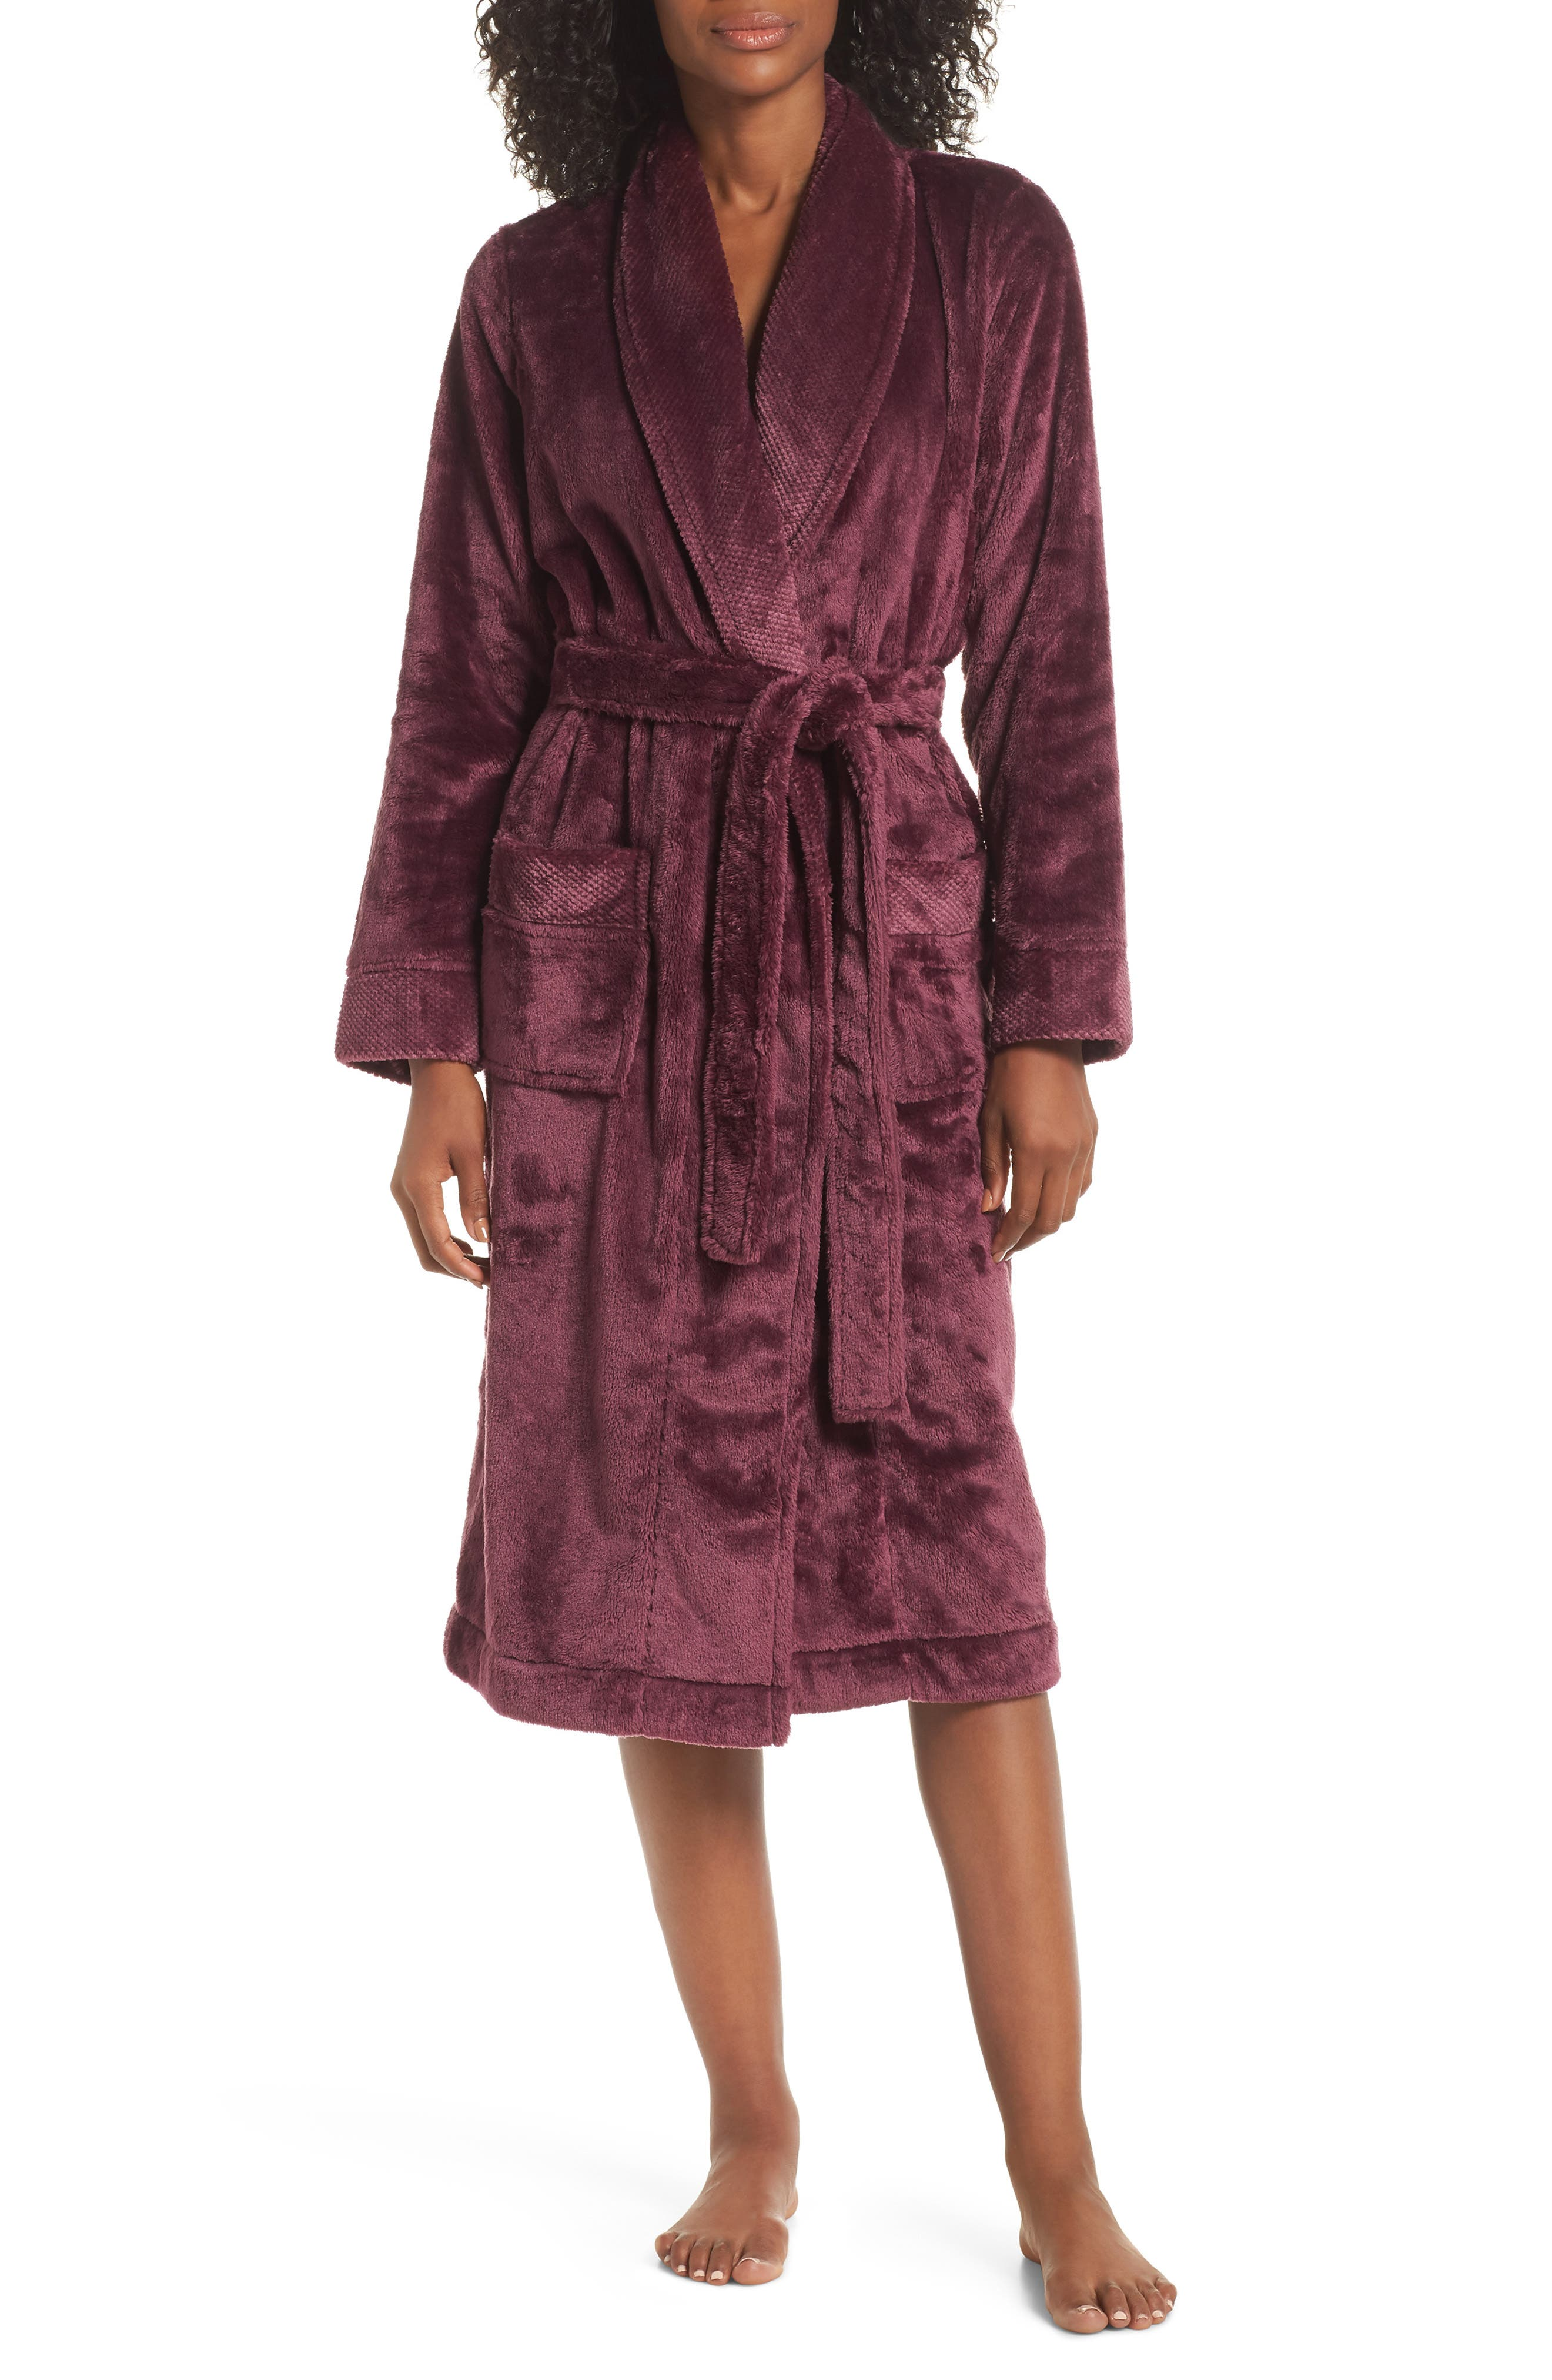 Nordstrom So Soft Plush Robe,                             Main thumbnail 1, color,                             PURPLE CRUSH